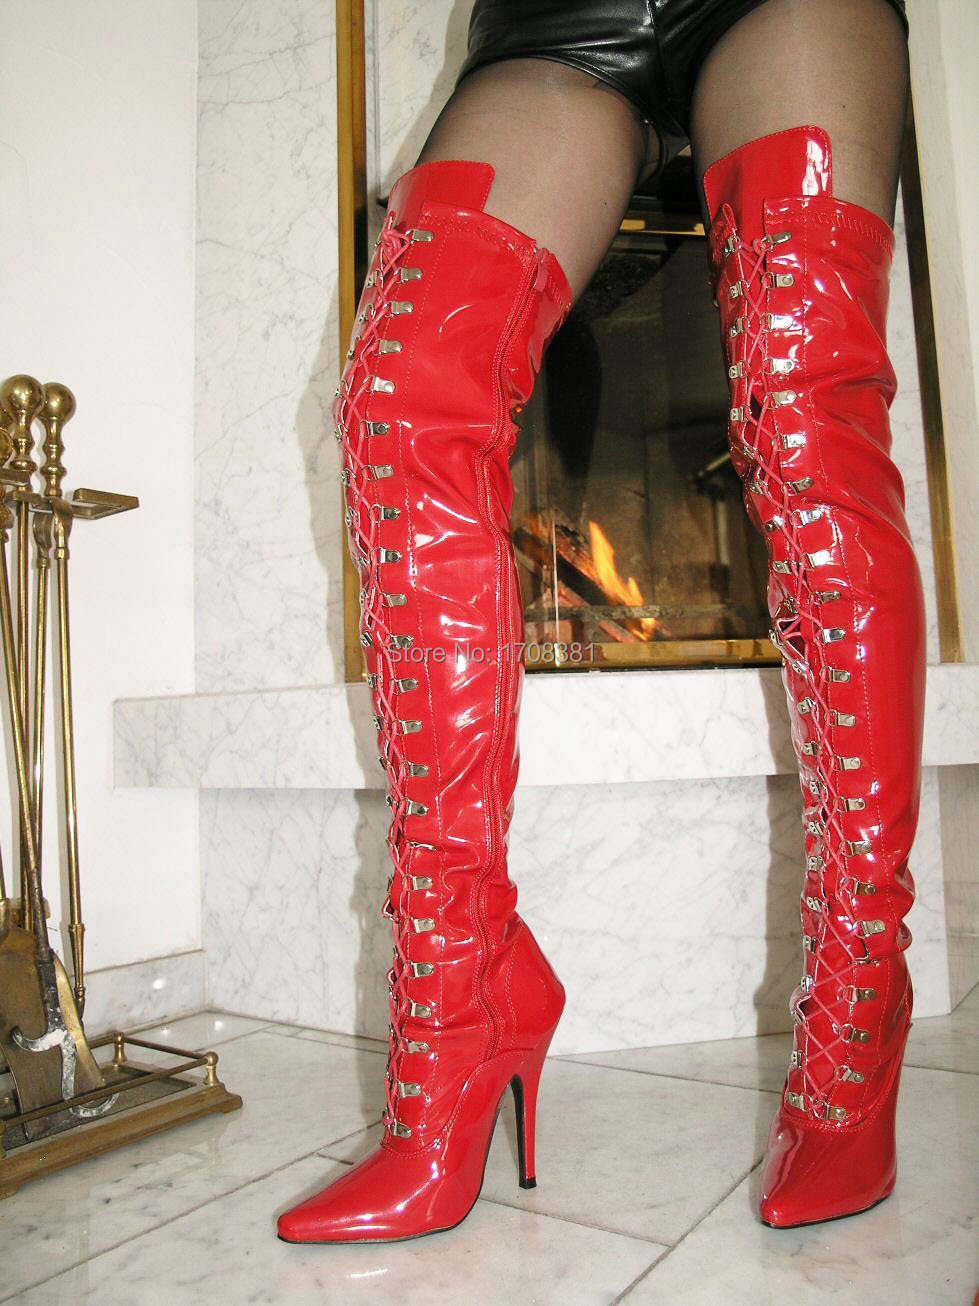 Size 12 Thigh High Boots - Cr Boot